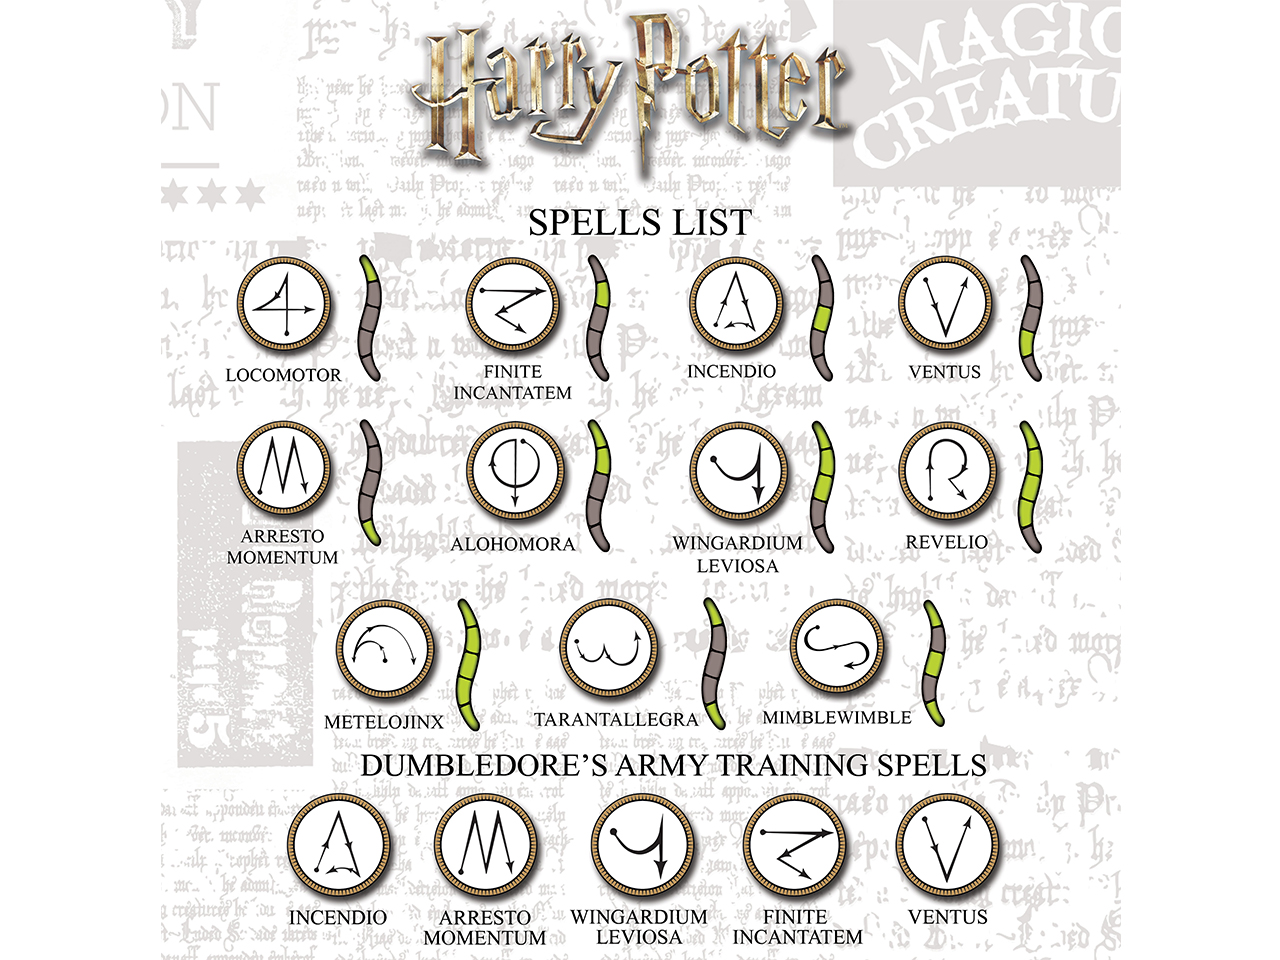 list of spells you can cast with the new Harry Potter wands